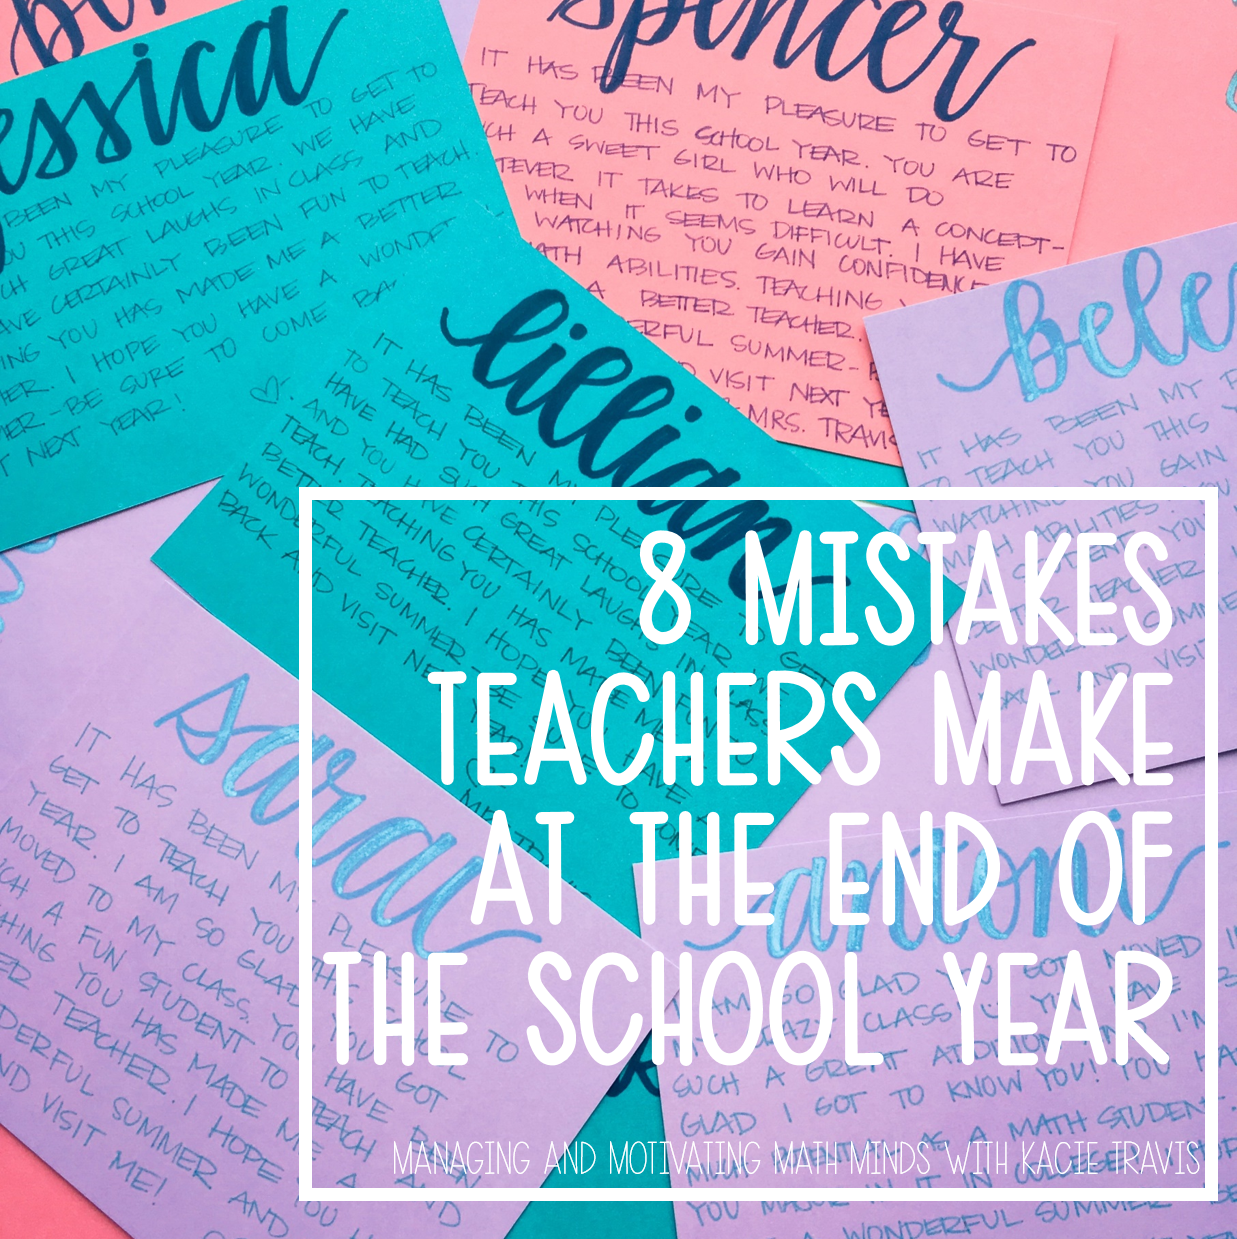 Don't Make These 8 End-of-Year Mistakes